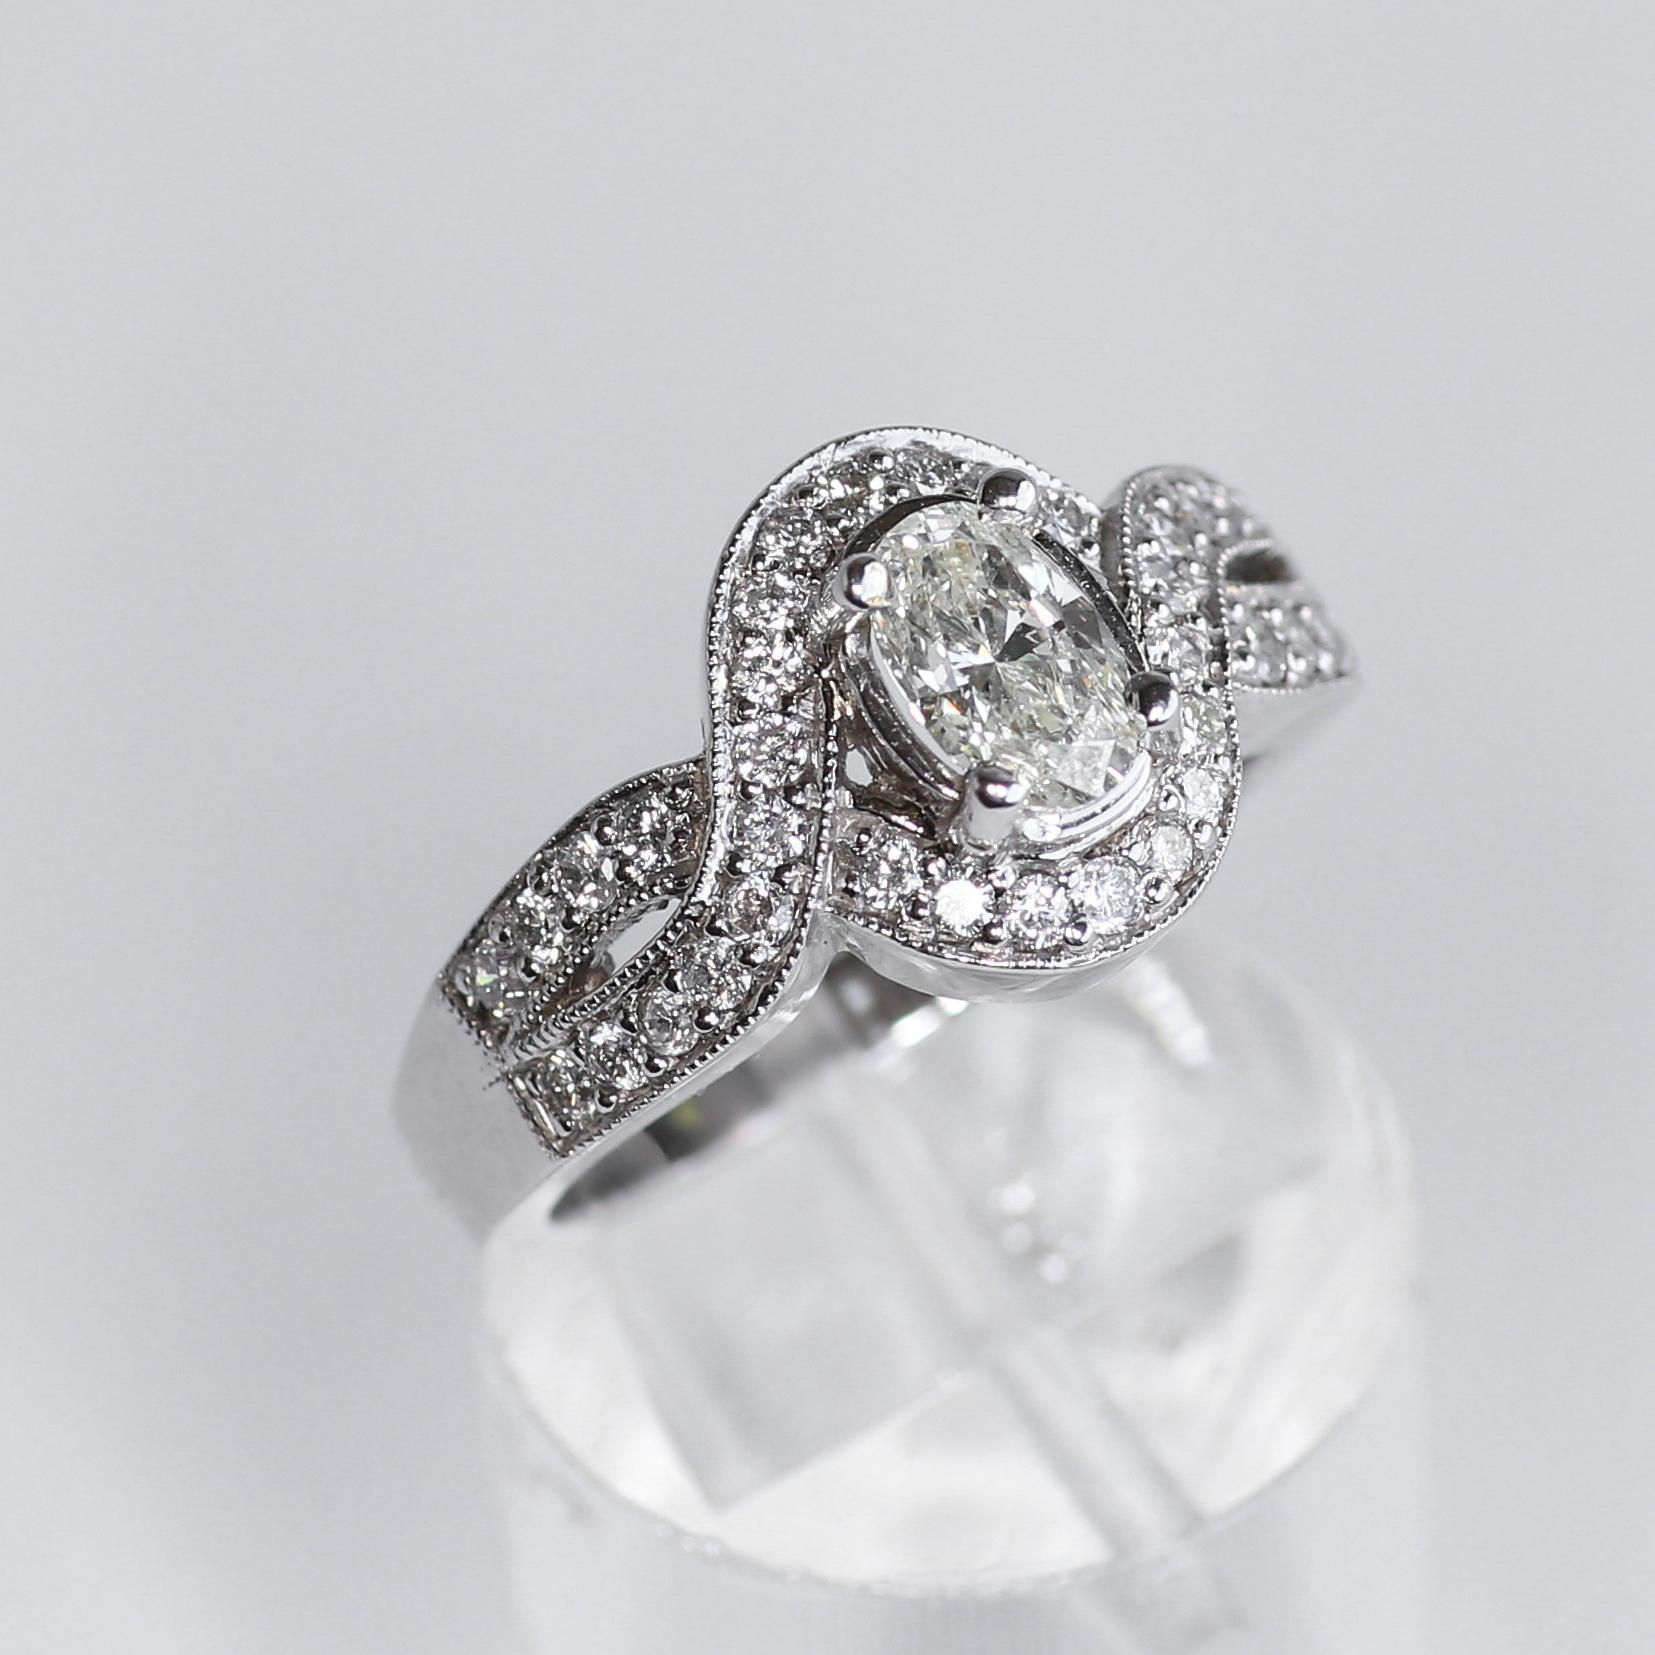 Lds. 14K White Gold Oval Diamond Art Deco Style Ring